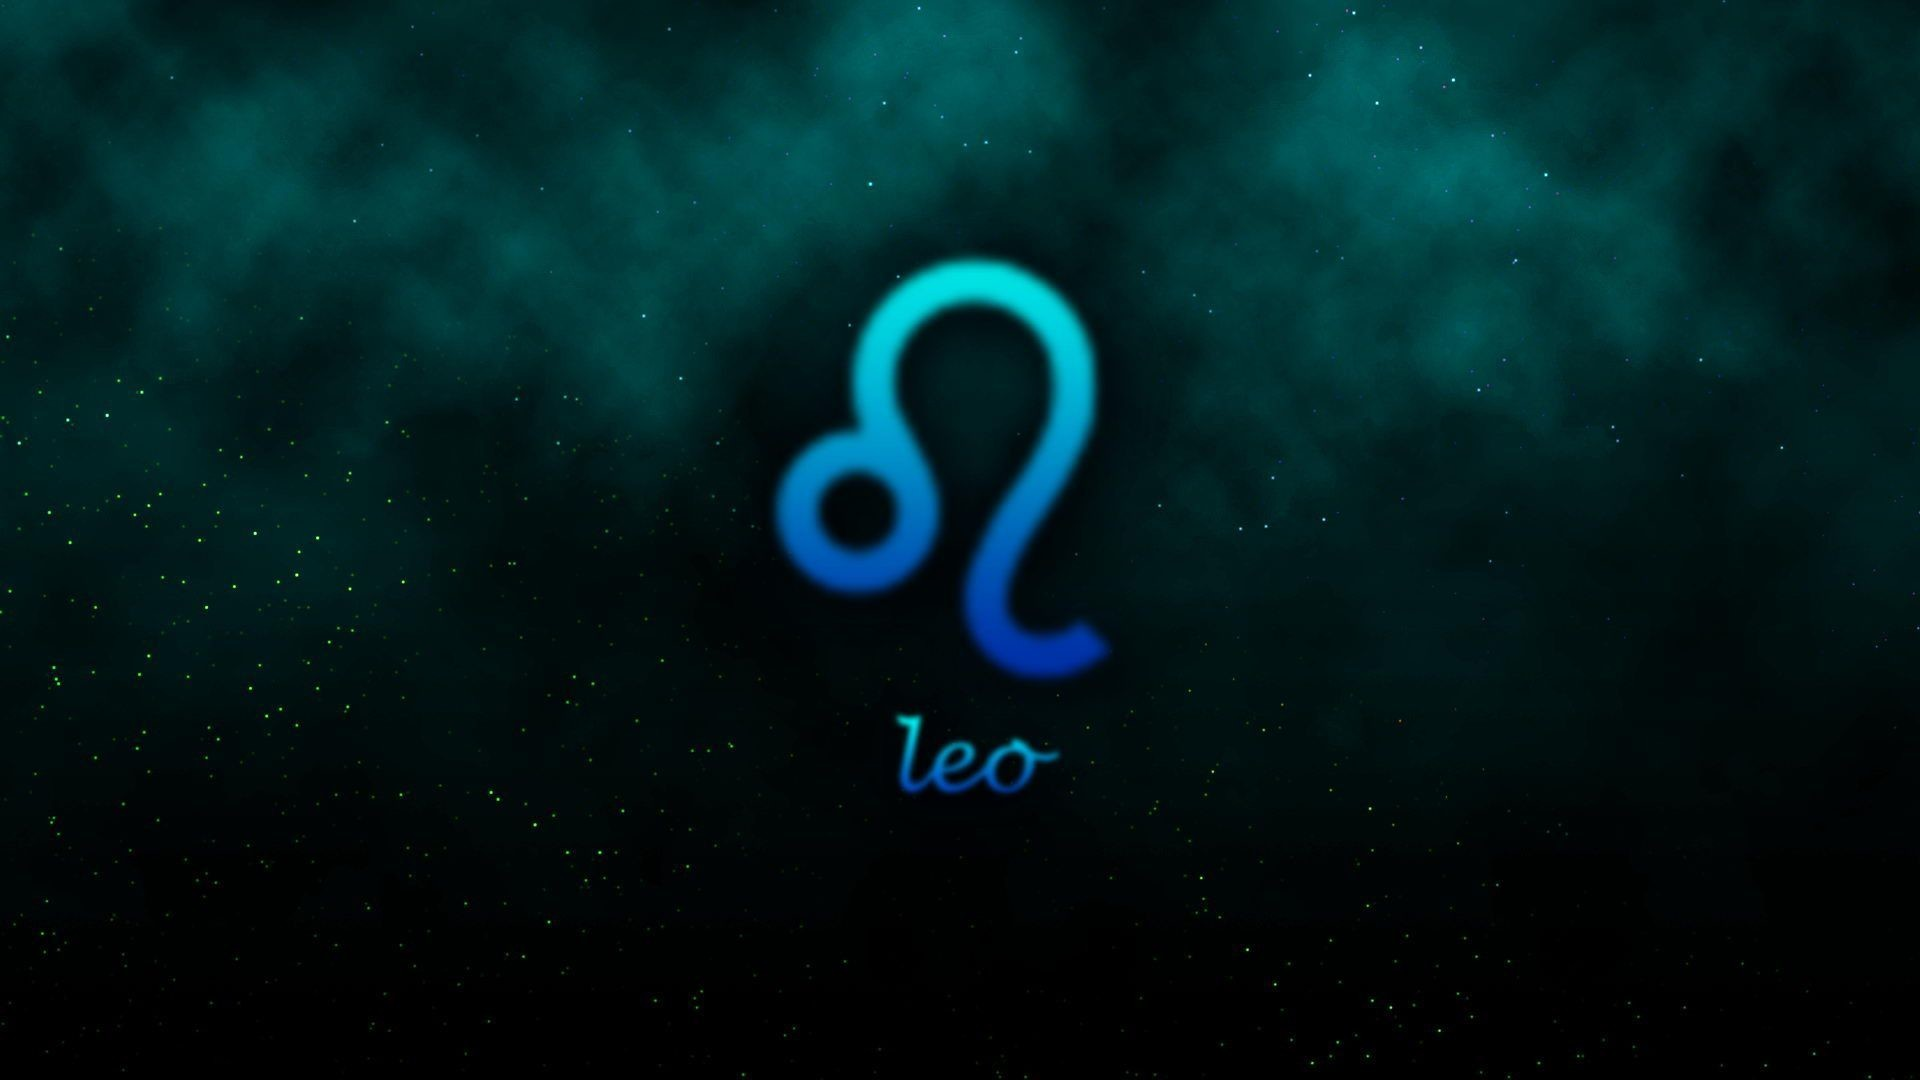 Res: 1920x1080, Astrology Background Stock Images RoyaltyFree Images Vectors